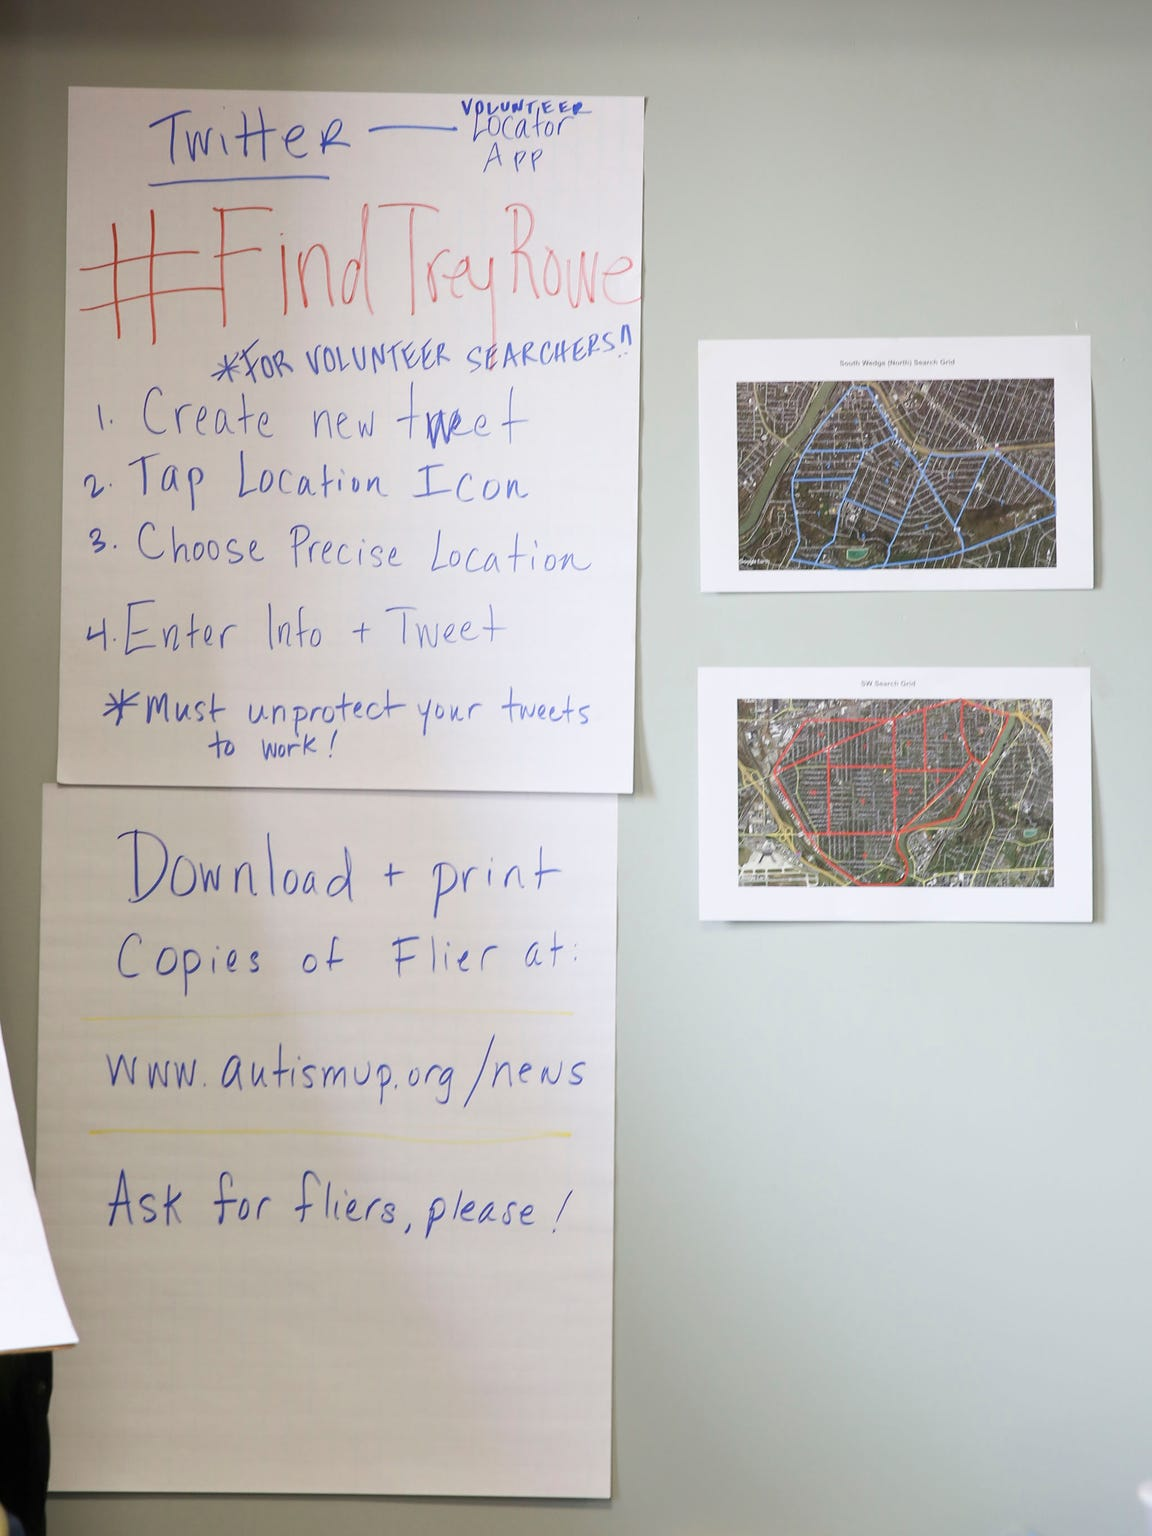 The public was encouraged to used the hashtag #FindTreyRowe